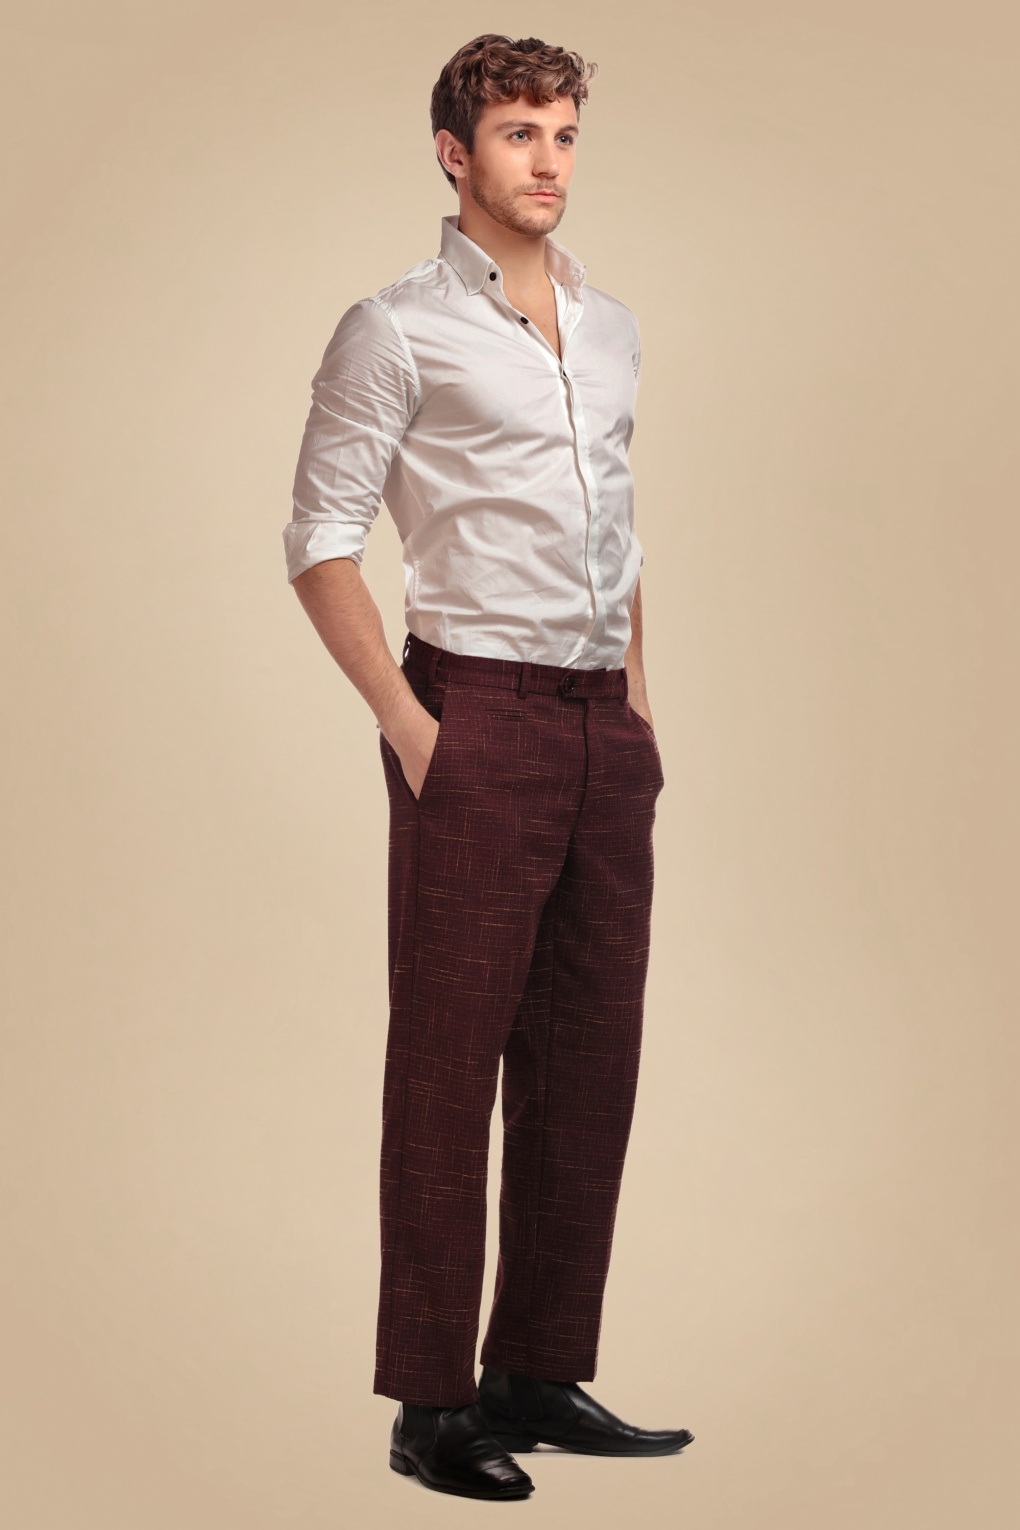 1950s Men's Pants, Trousers, Shorts | Rockabilly Jeans, Greaser Styles 50s Bobbie Crosshatch Trousers in Burgundy £66.40 AT vintagedancer.com